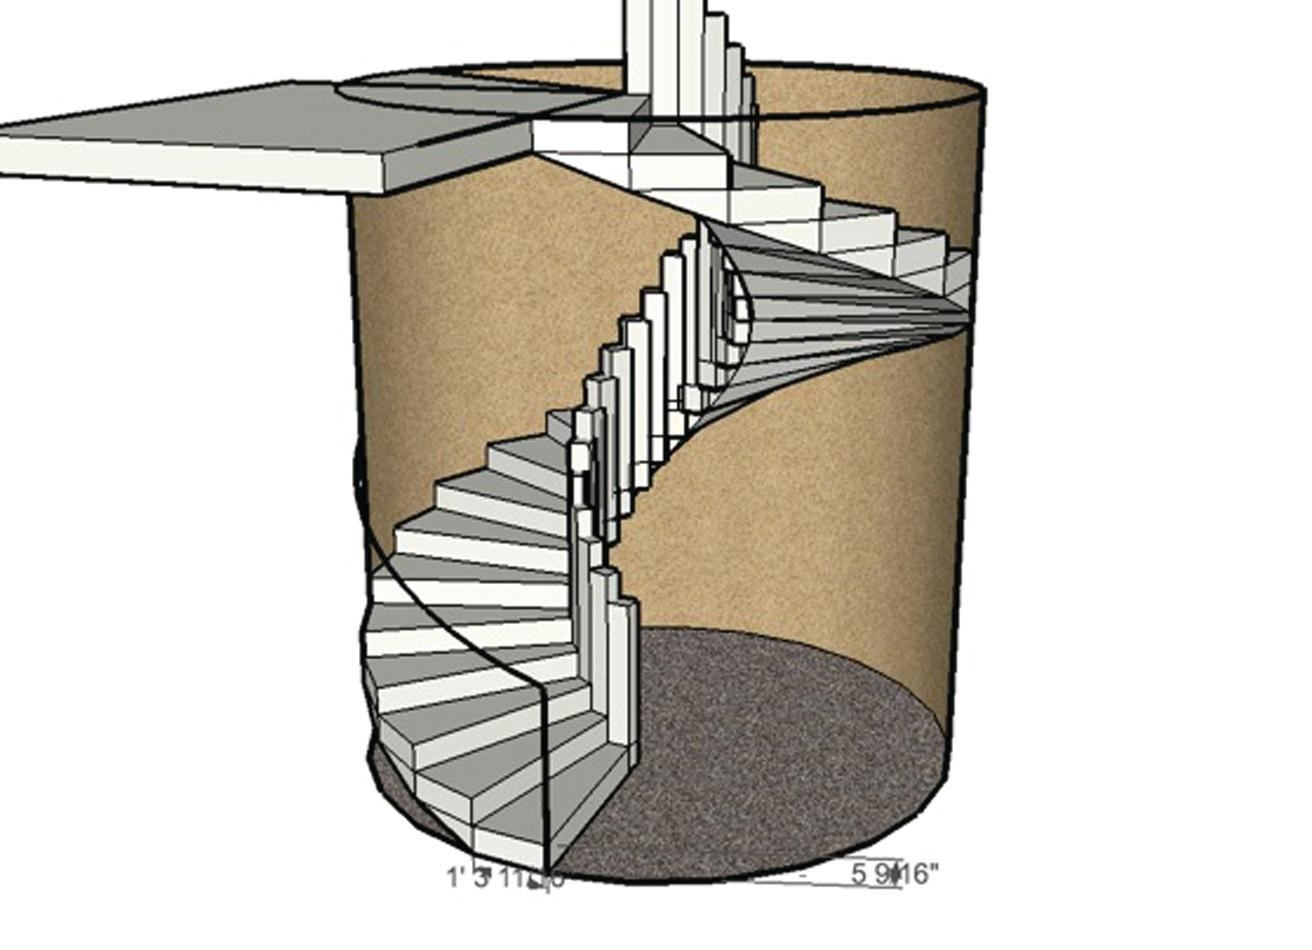 Forming A Circular Concrete Staircase Concrete Construction Magazine | 10 Foot Spiral Staircase | Reroute Galvanized | Lowes | Stair Kit | Winding Staircase | Staircase Kit